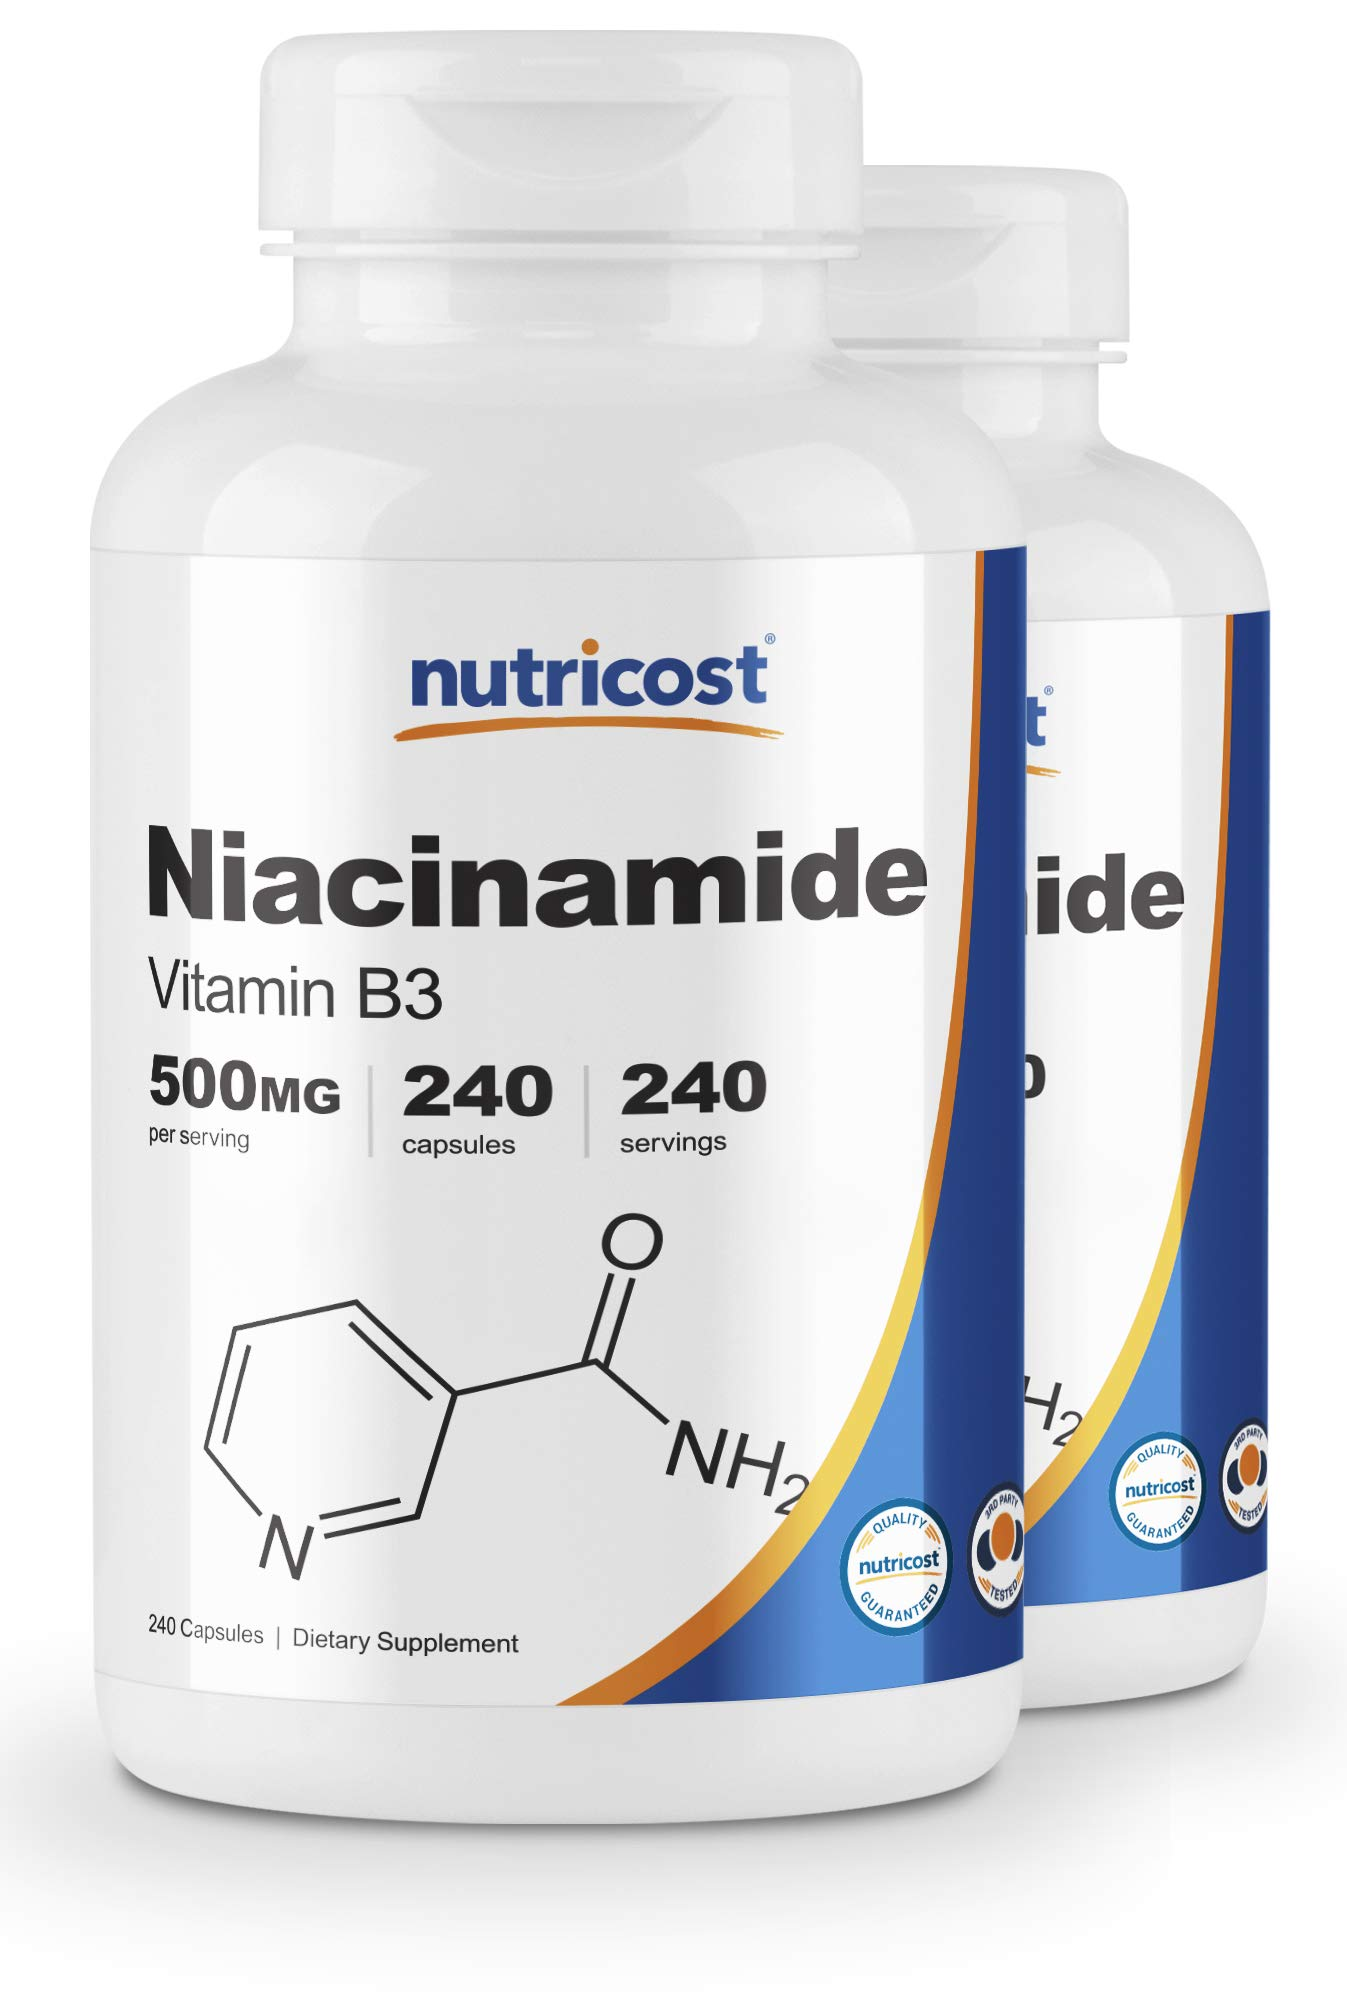 Nutricost Niacinamide (Vitamin B3) 500mg, 240 Capsules (2 Bottles) by Nutricost